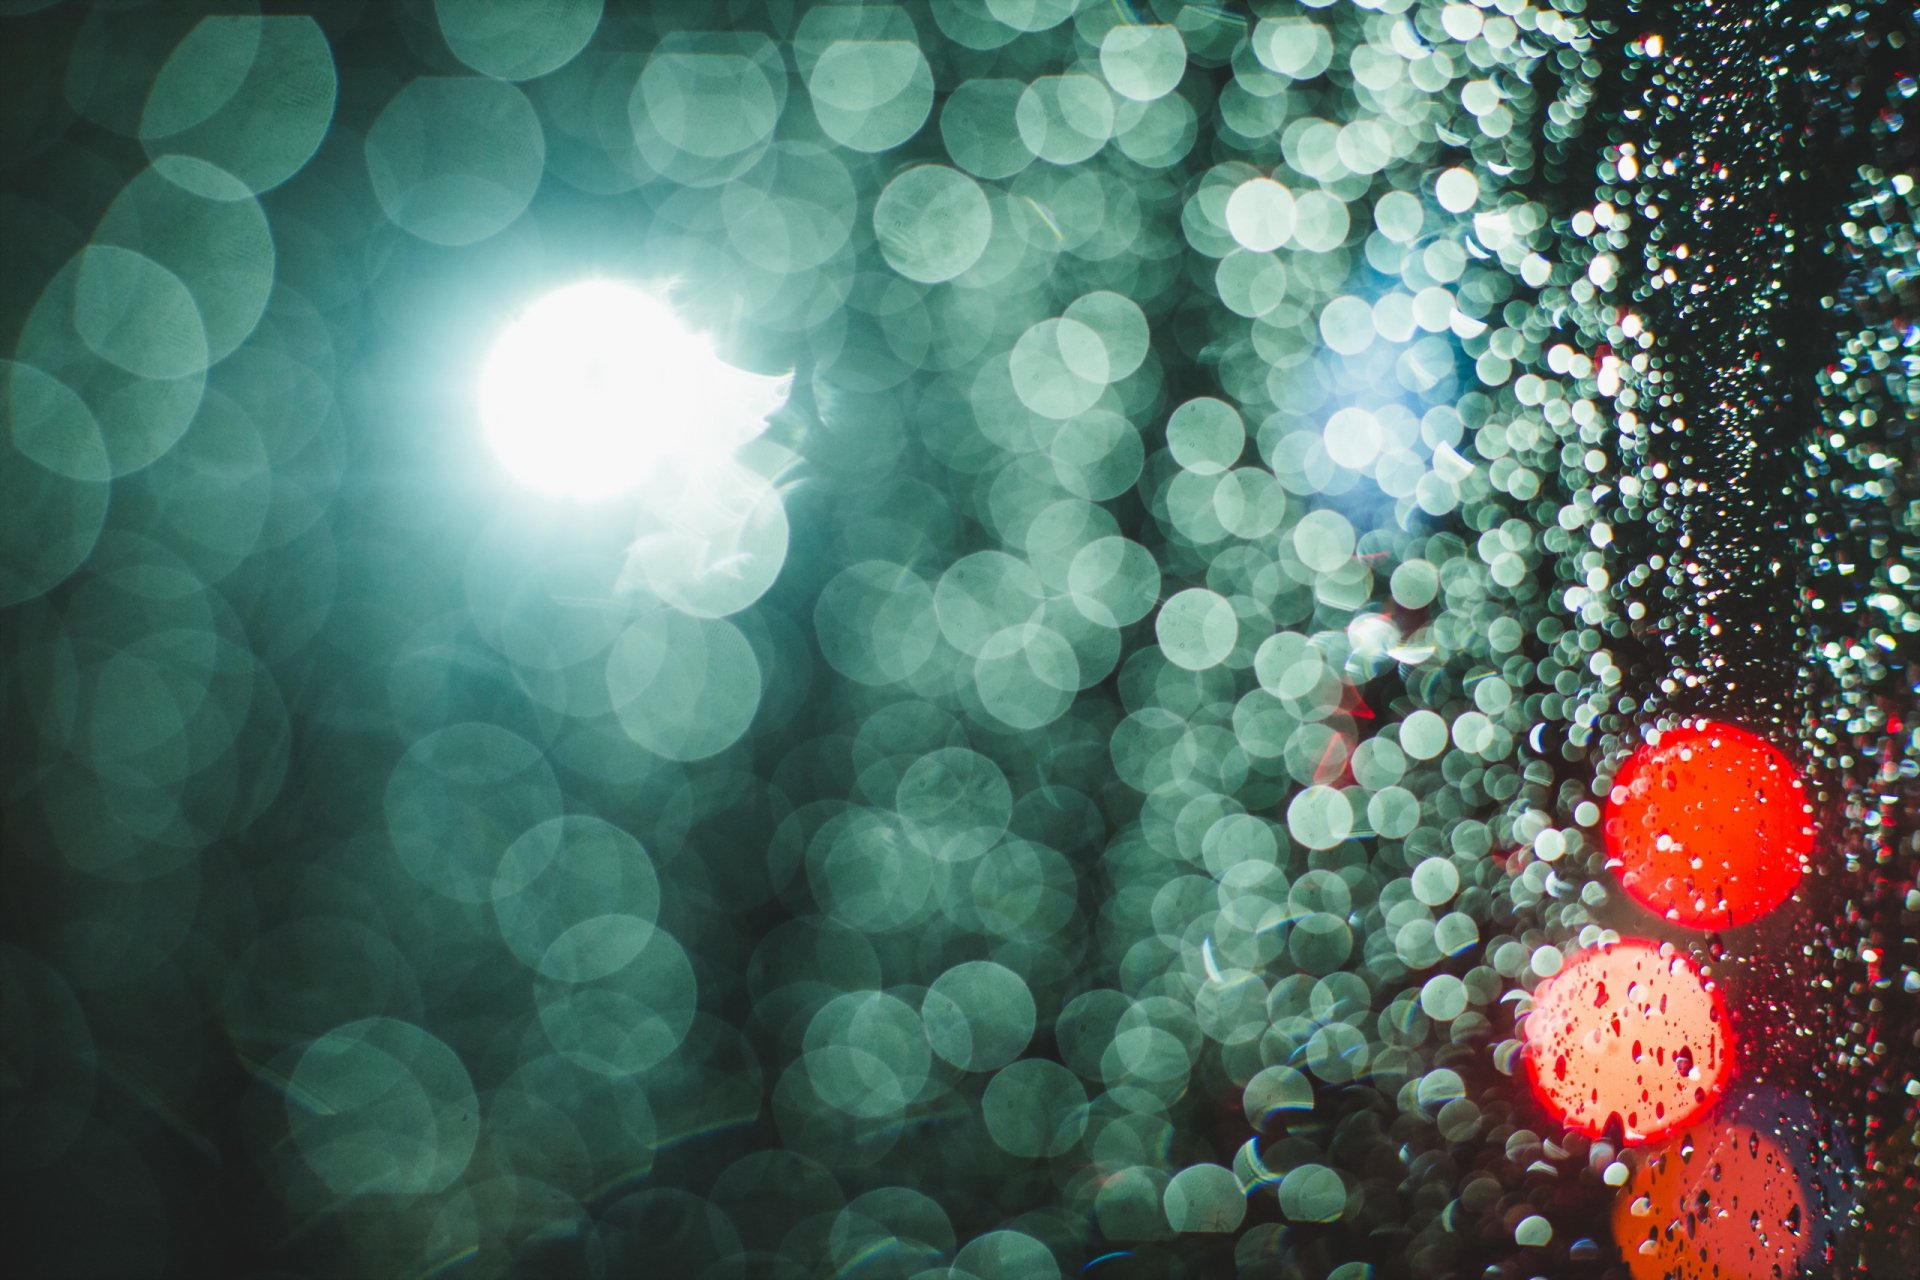 Artistic - Bokeh  Light Wallpaper